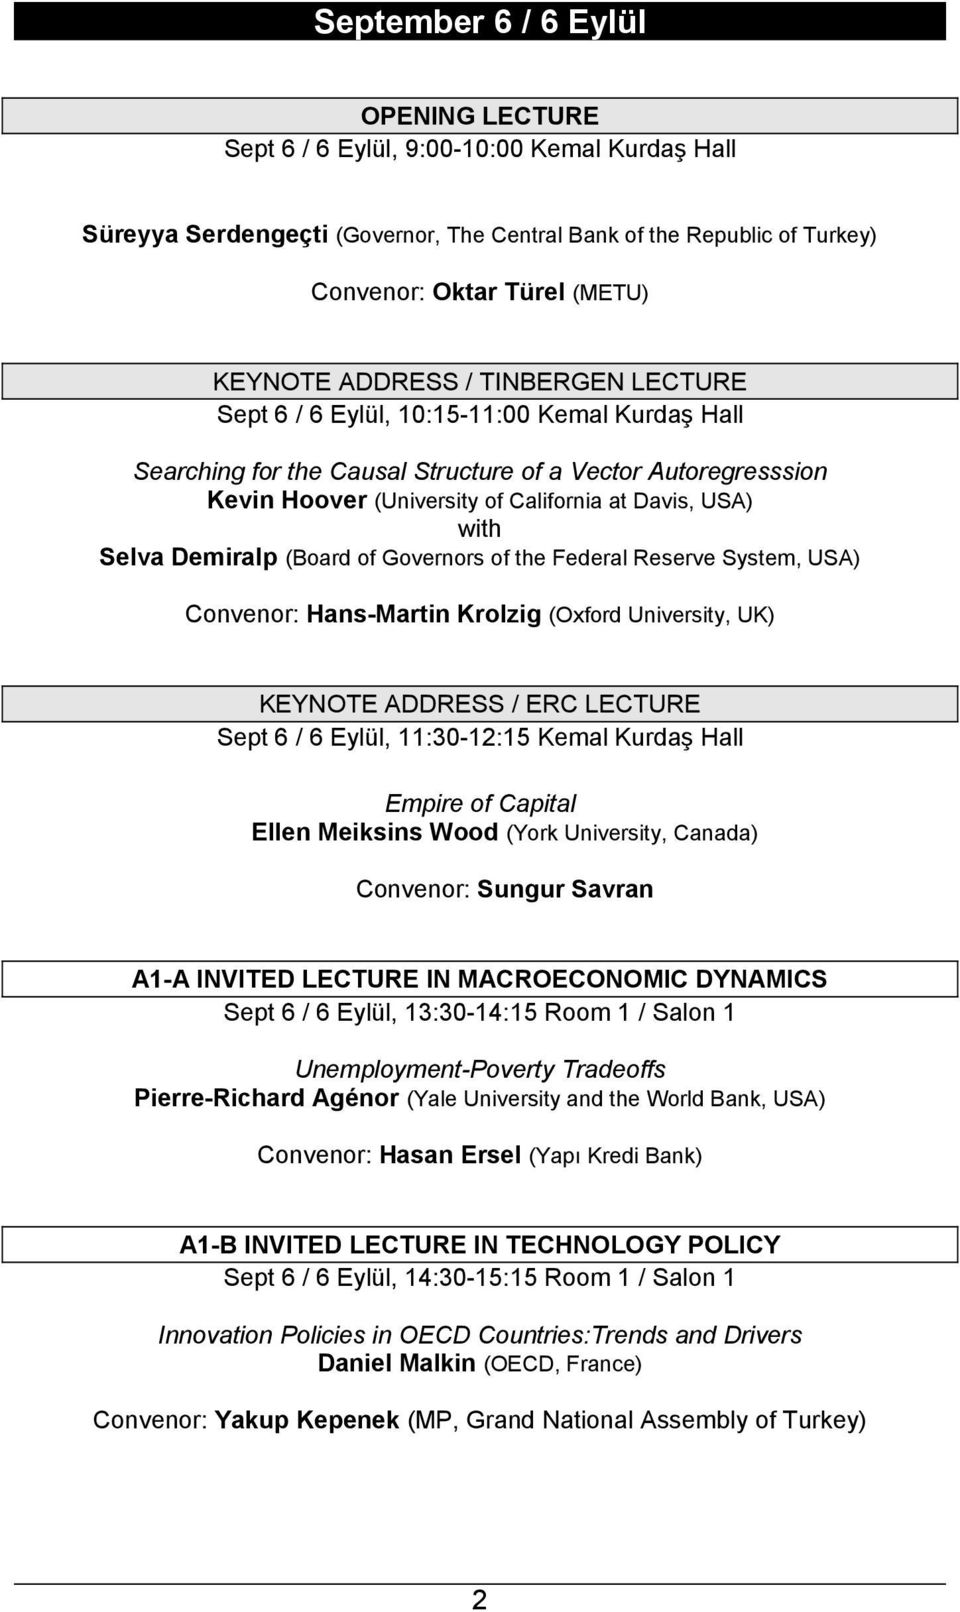 Selva Demiralp (Board of Governors of the Federal Reserve System, USA) Convenor: Hans-Martin Krolzig (Oxford University, UK) KEYNOTE ADDRESS / ERC LECTURE Sept 6 / 6 Eylül, 11:30-12:15 Kemal Kurdaş